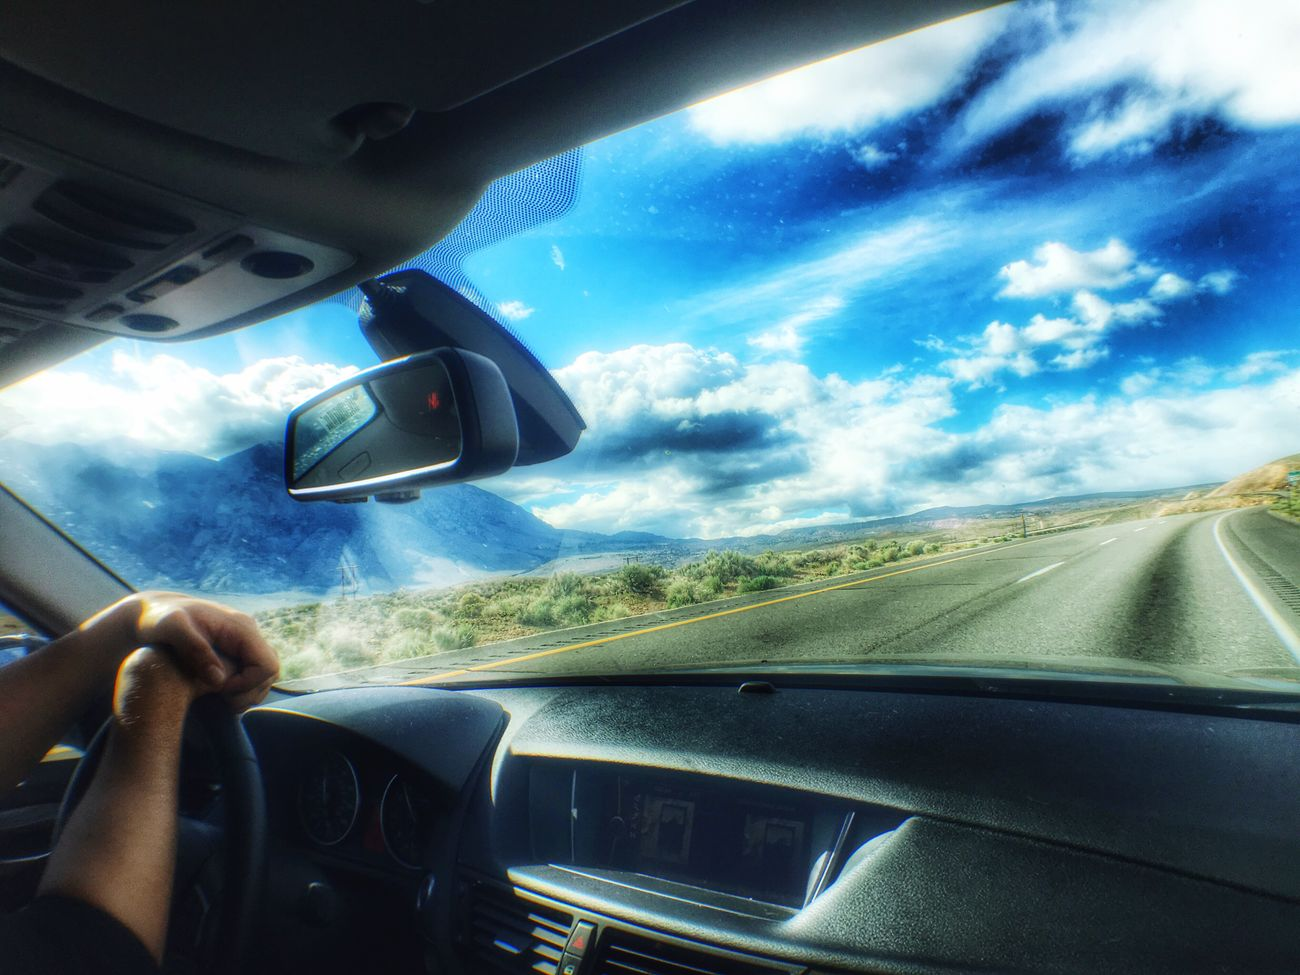 In The Car ! Driving Home Taking Photos Beutiful Day The Great Outdoors With Adobe Outdoor Photography From My Point Of View Random Landscape The Great Outdoors - 2016 EyeEm Awards